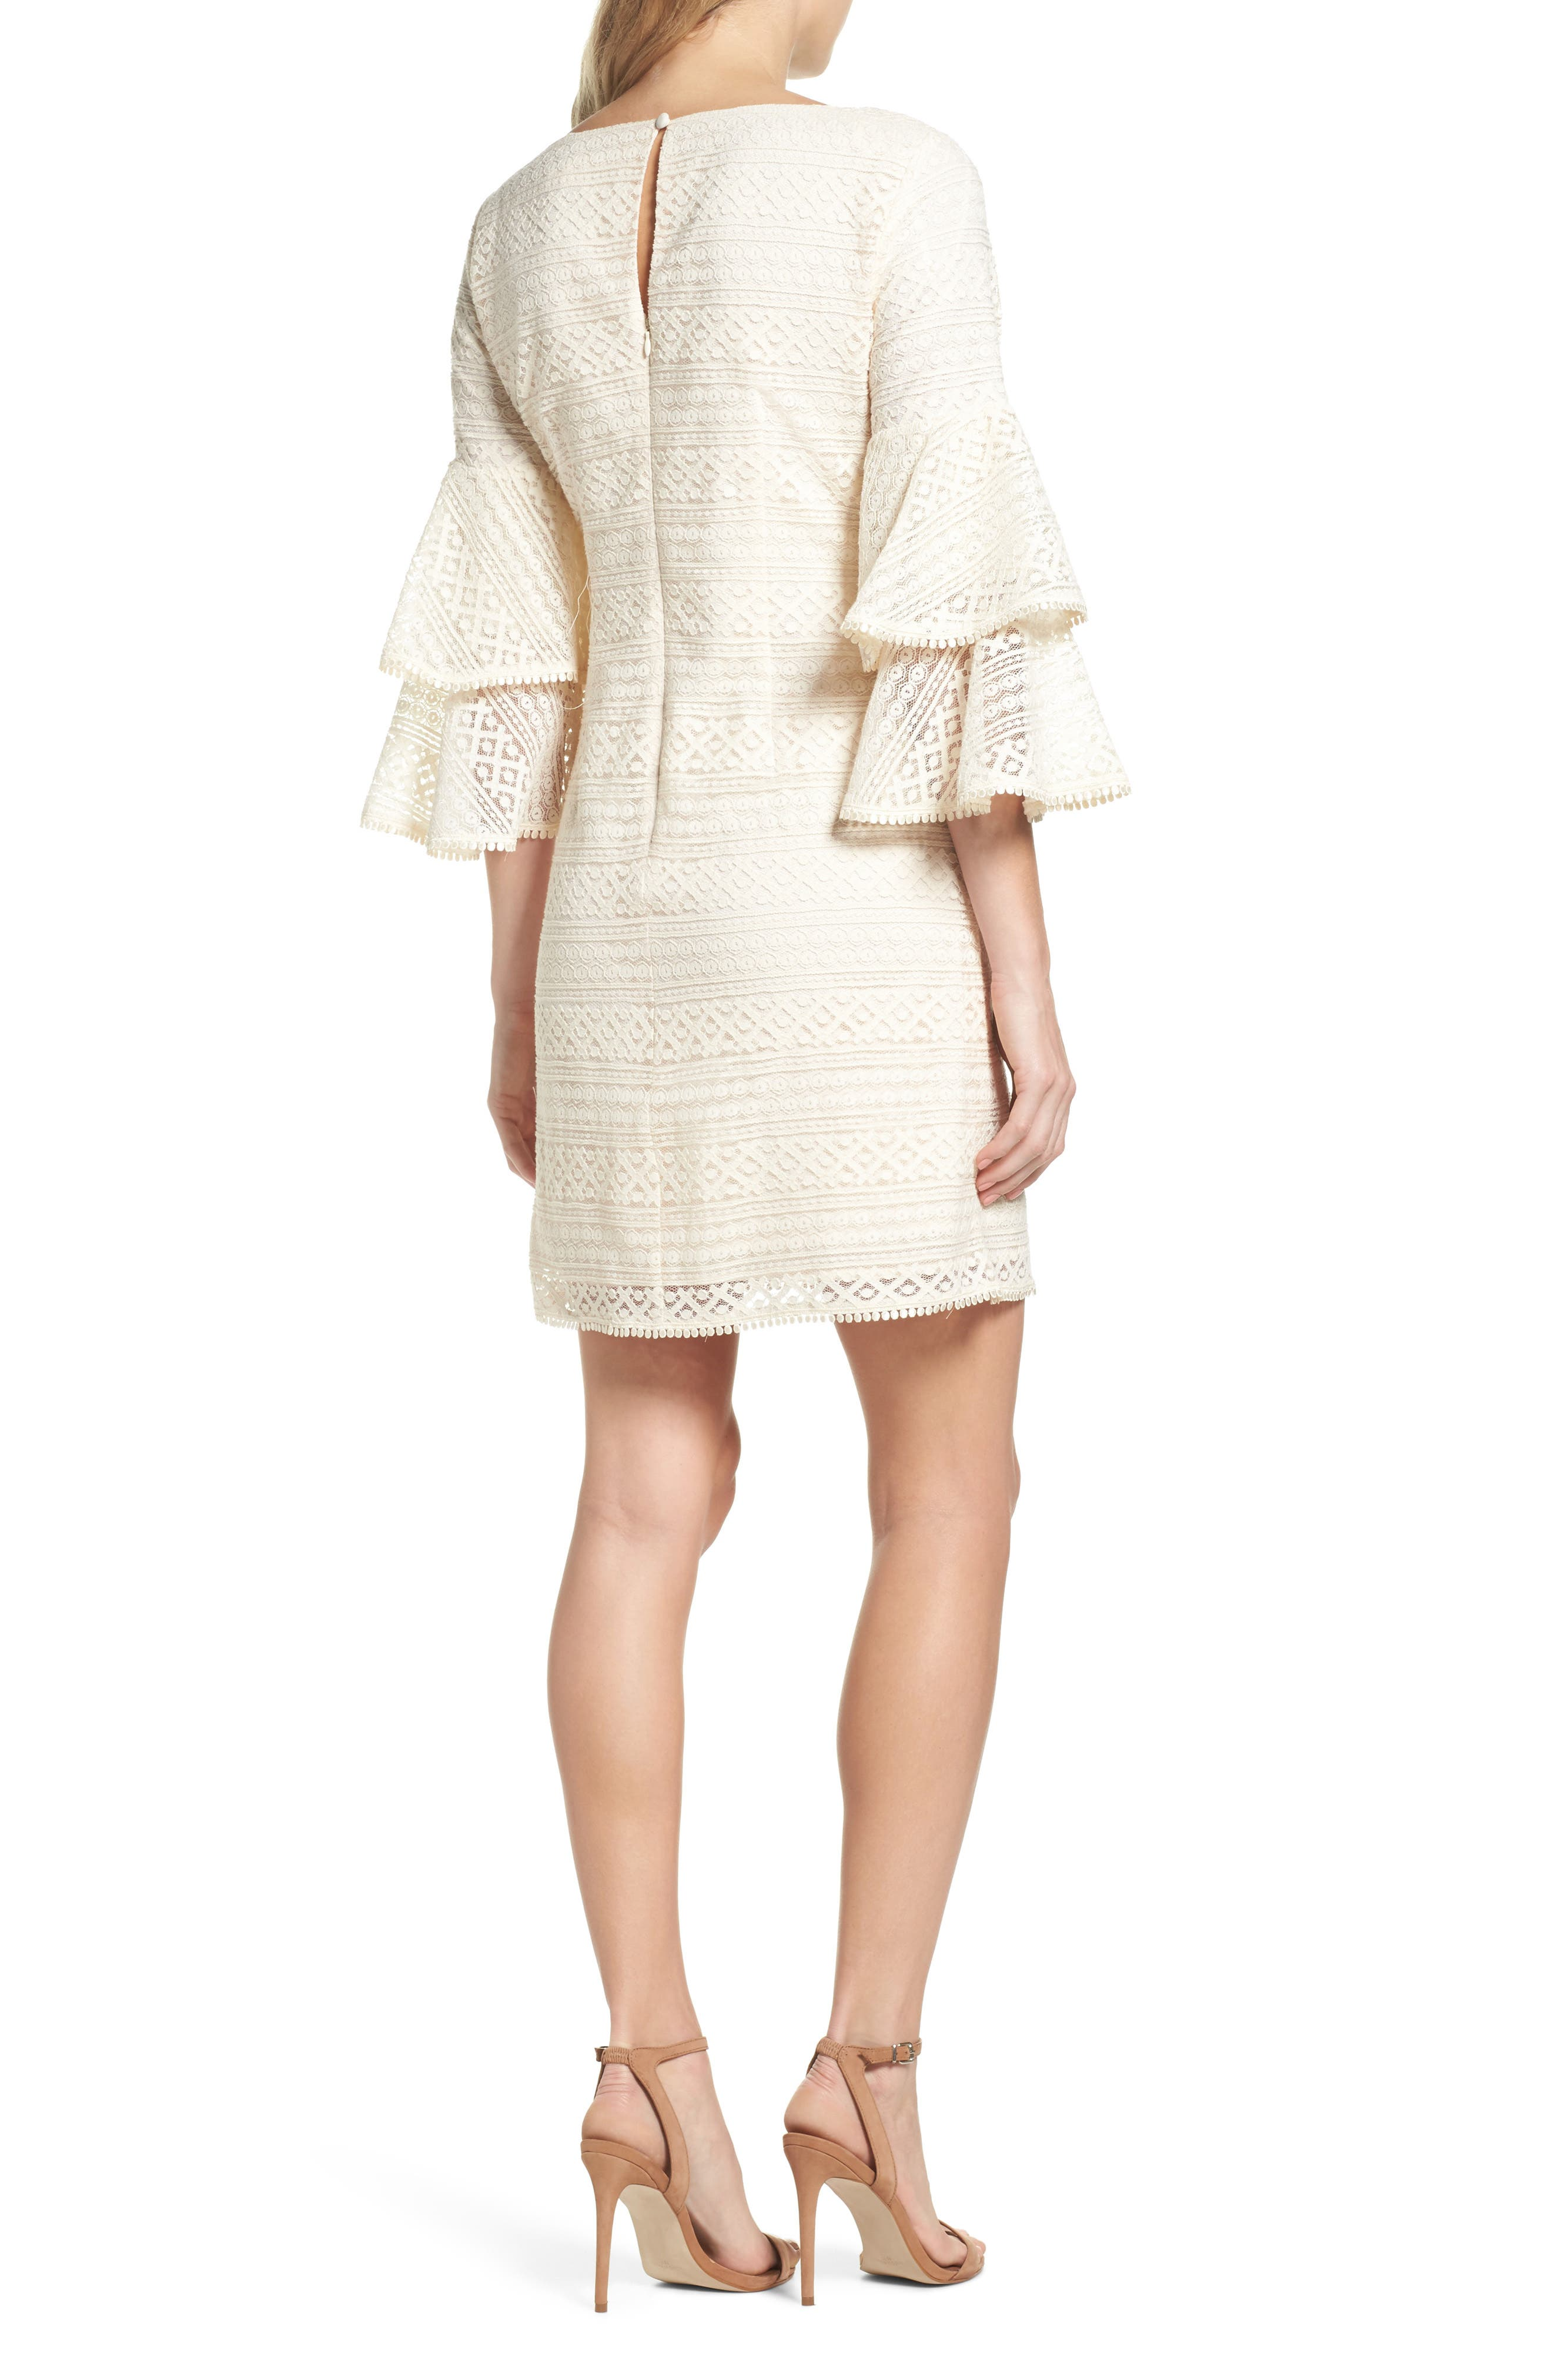 Bell Sleeve Lace Shift Dress,                             Alternate thumbnail 2, color,                             Ivory